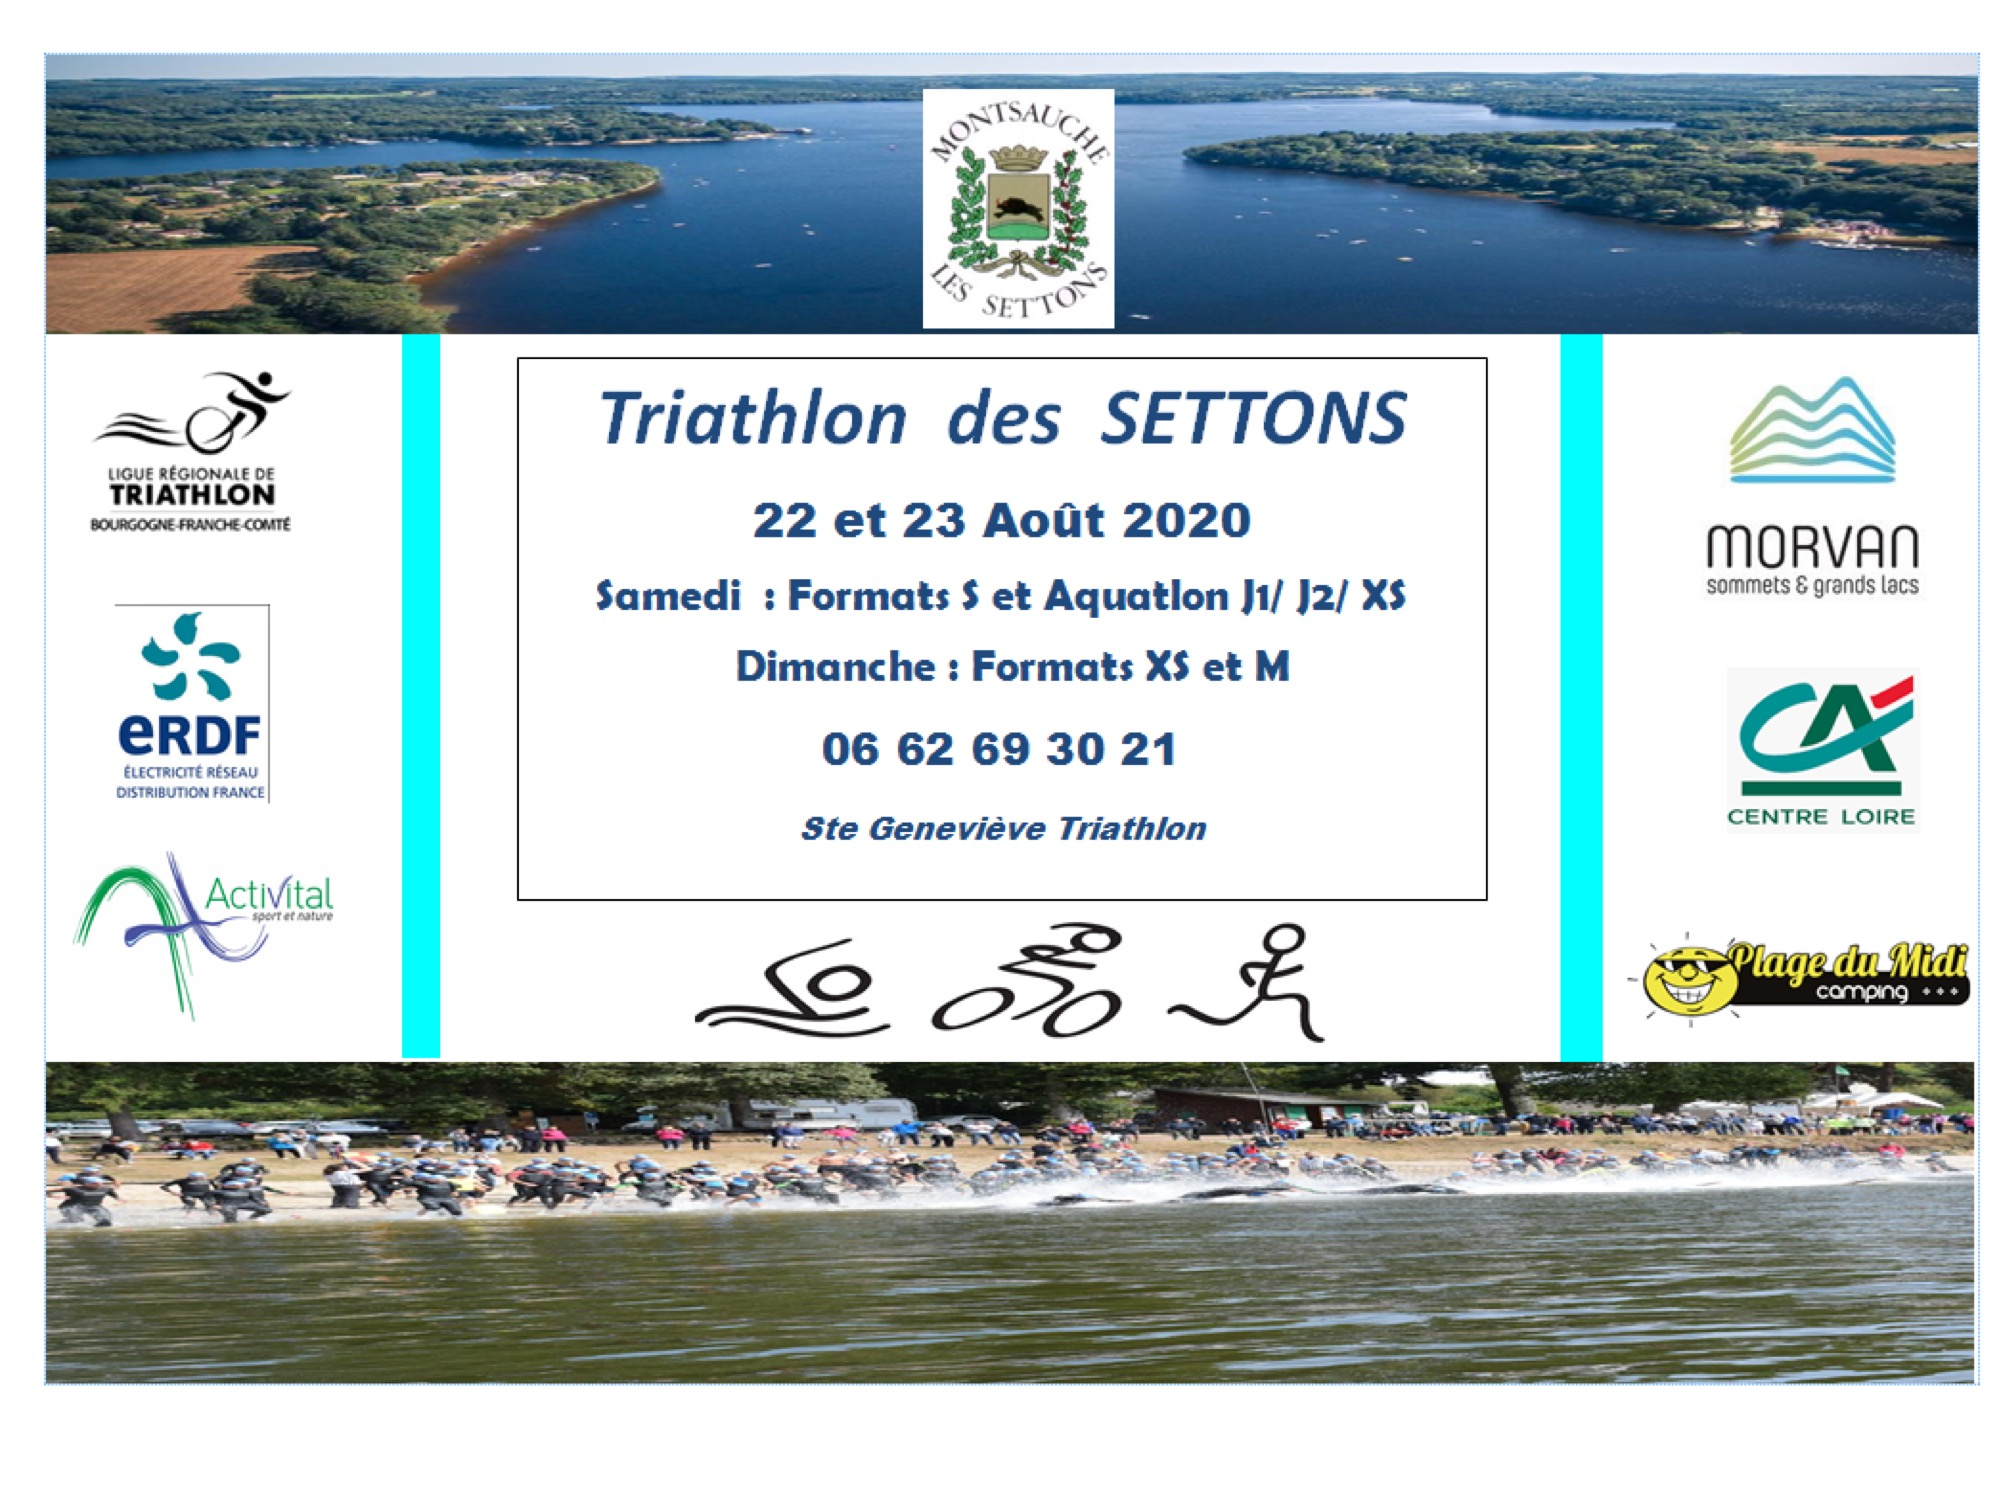 Illustration TRIATHLON DES SETTONS